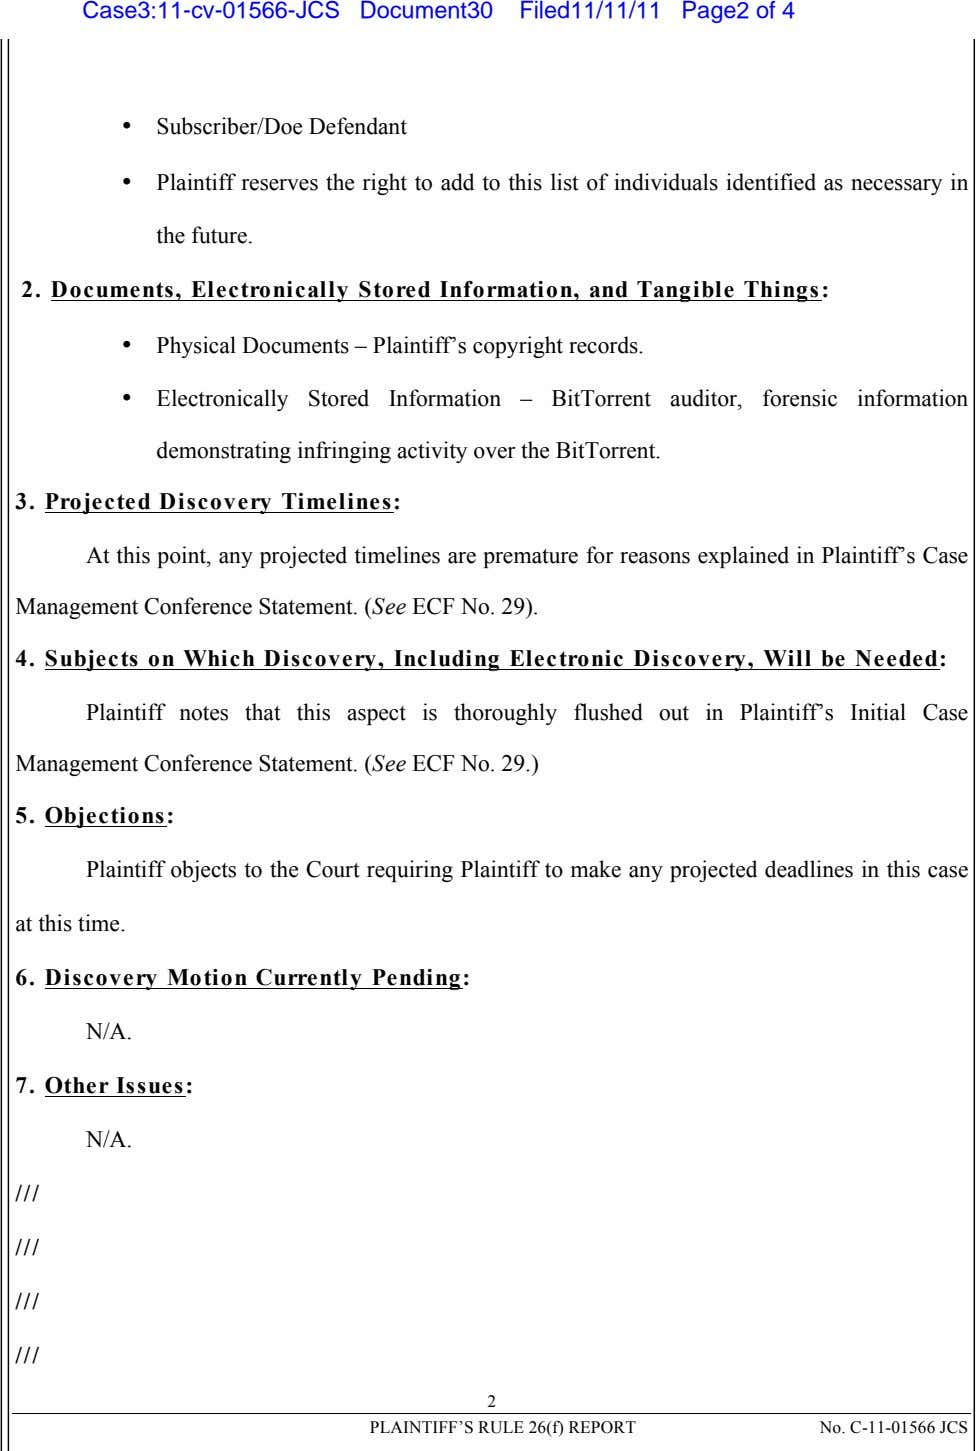 Case3:11-cv-01566-JCS Document30 Filed11/11/11 Page2 of 4 • Subscriber/Doe Defendant • Plaintiff reserves the